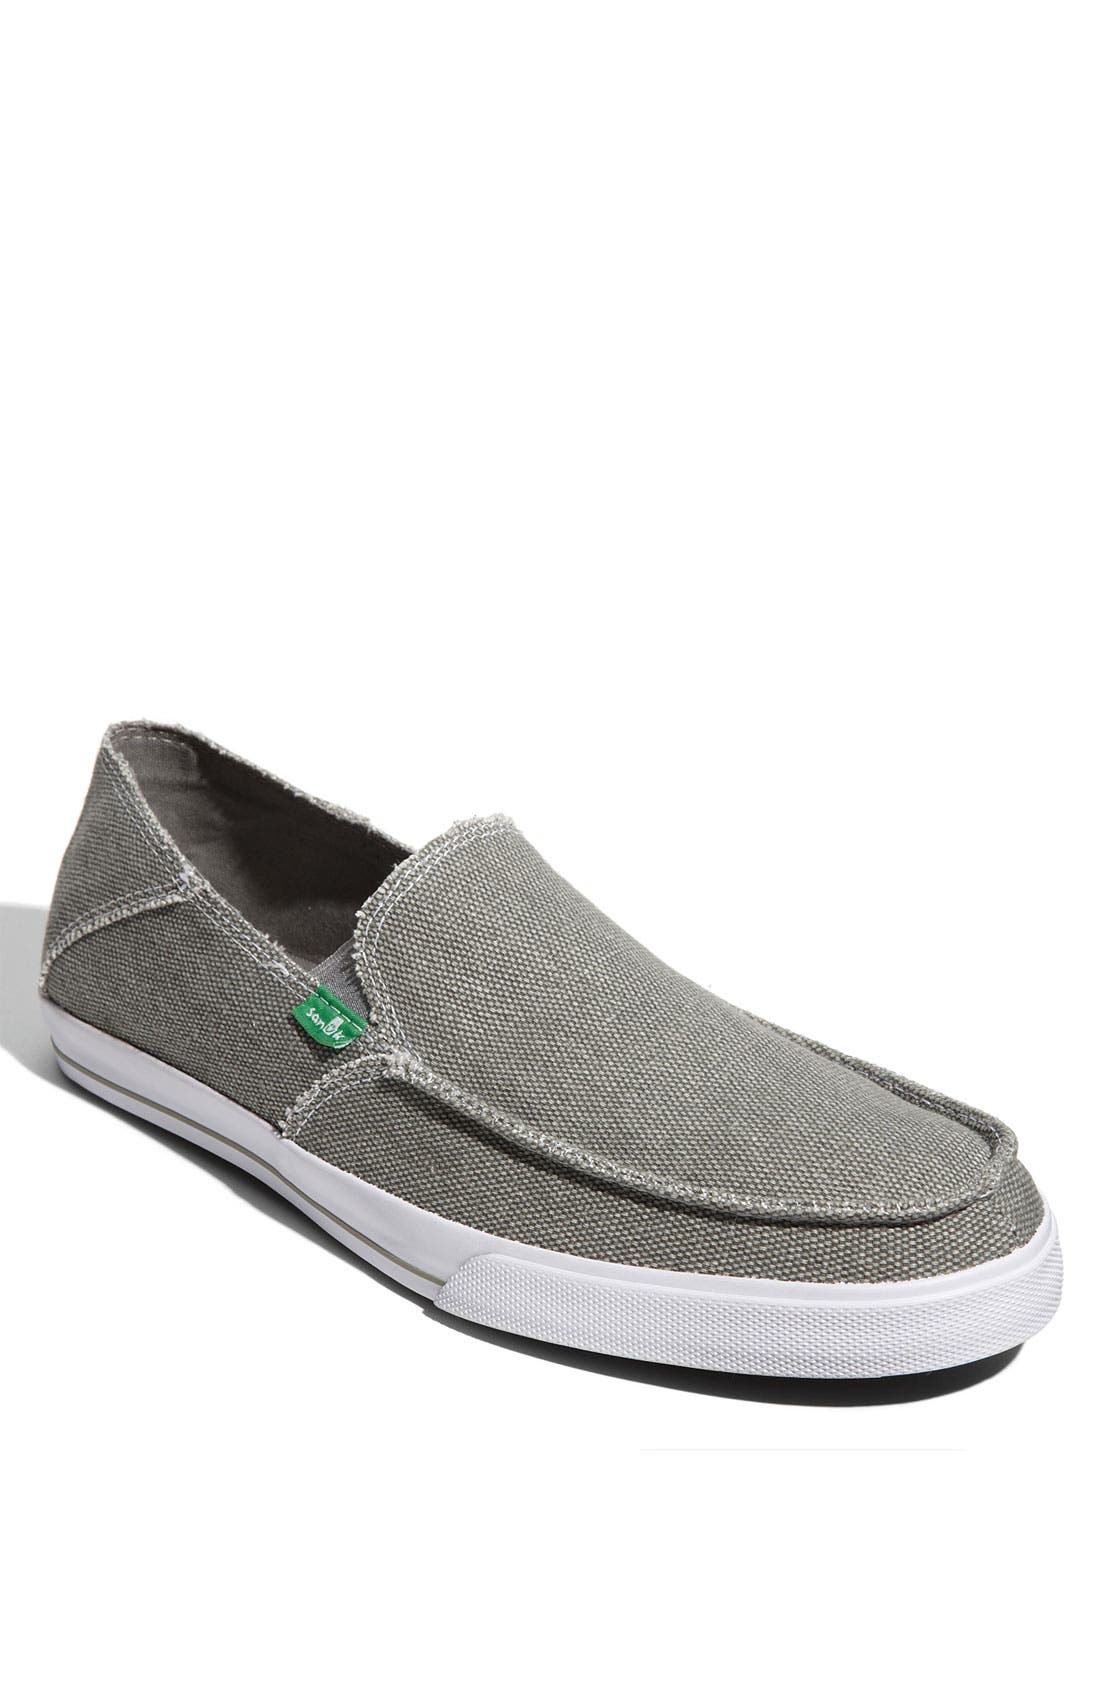 Alternate Image 1 Selected - Sanuk 'Standard' Slip-On